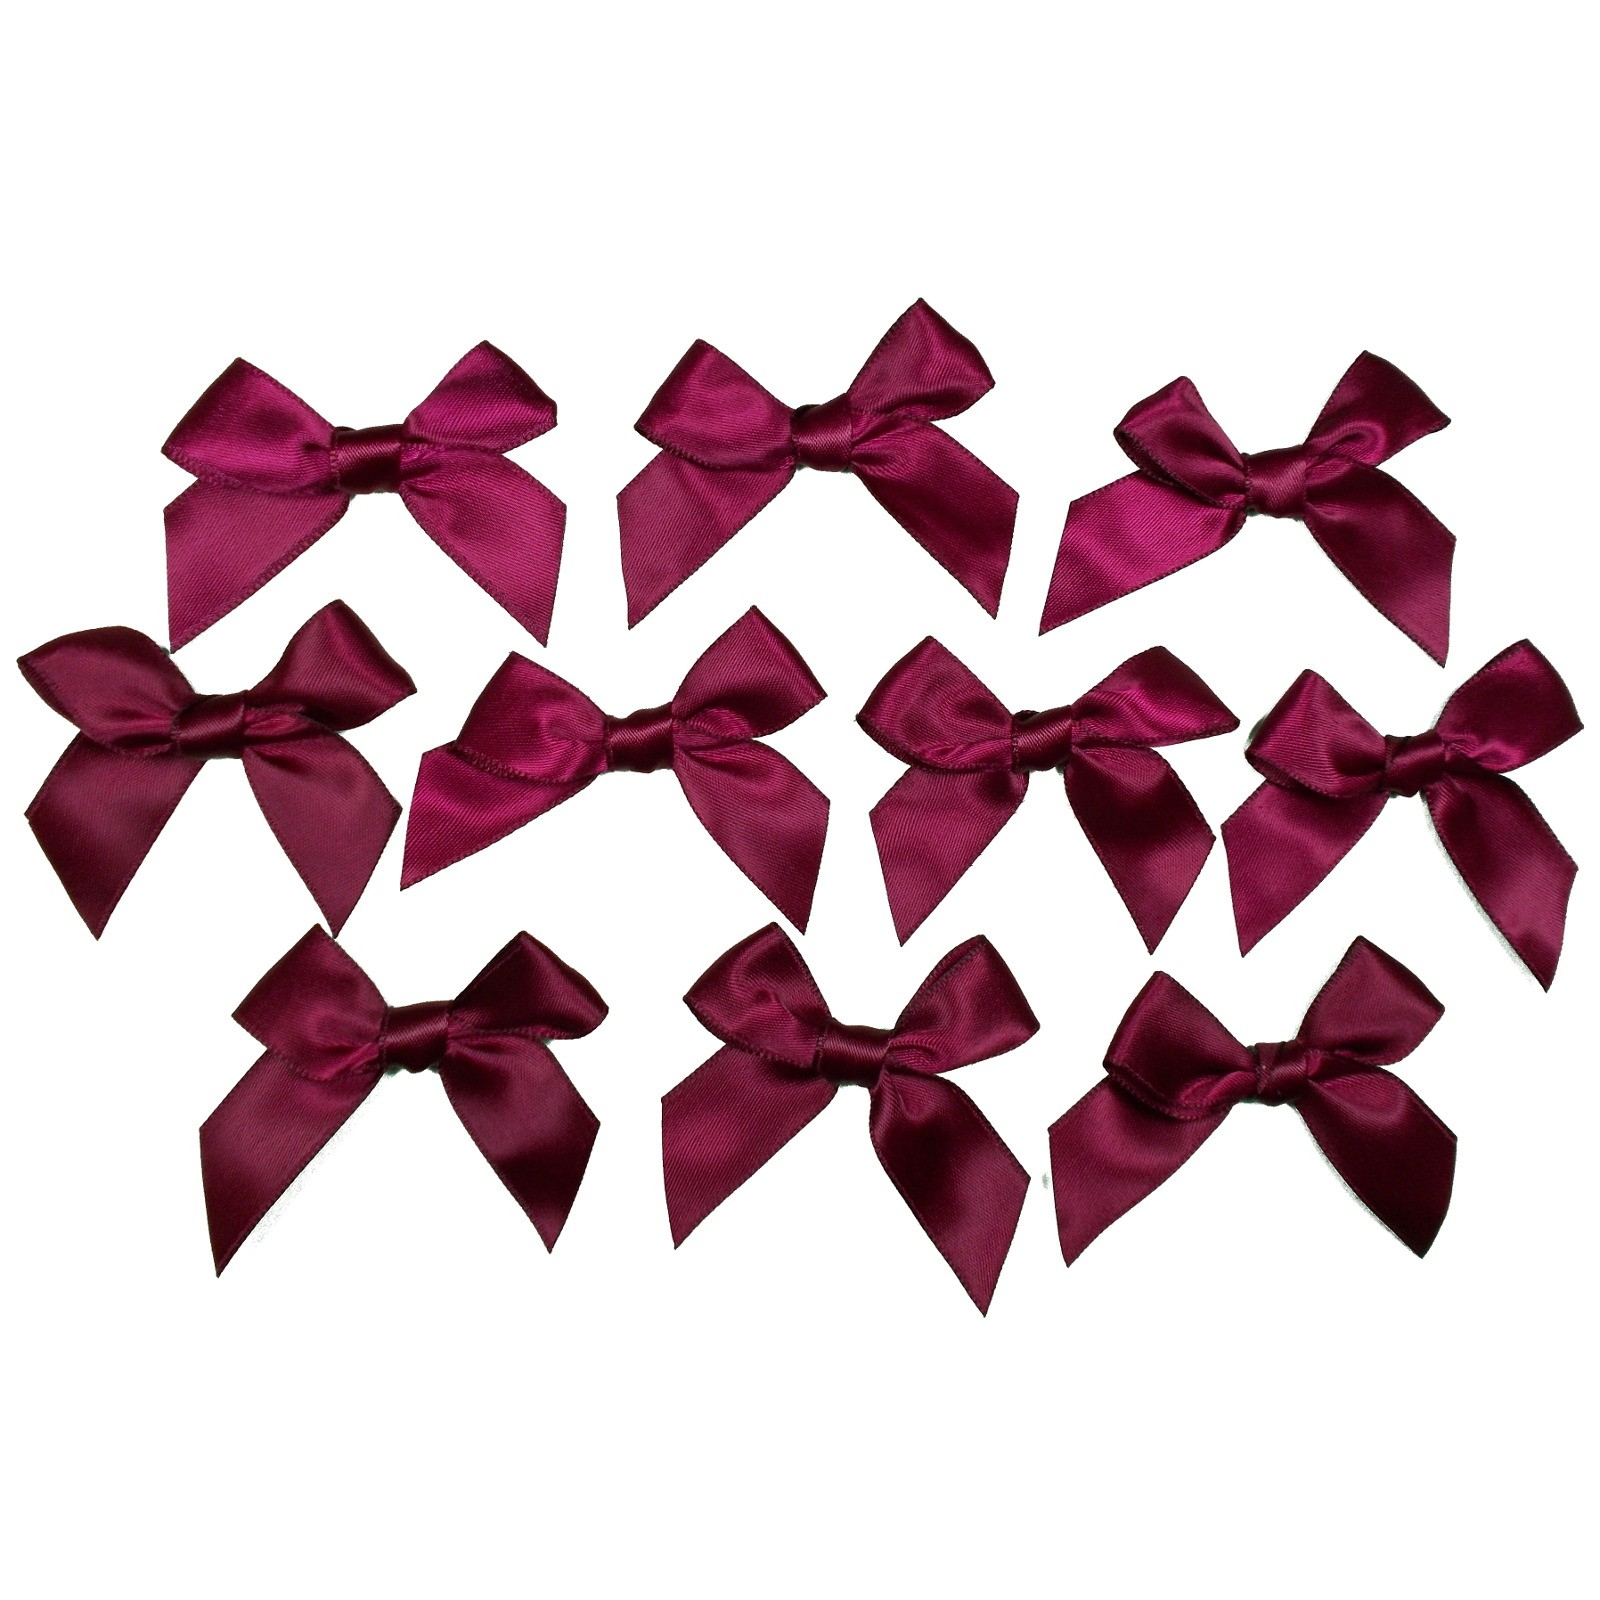 Satin Ribbon Bows approx 5.5cm wide Wine Pack of 10